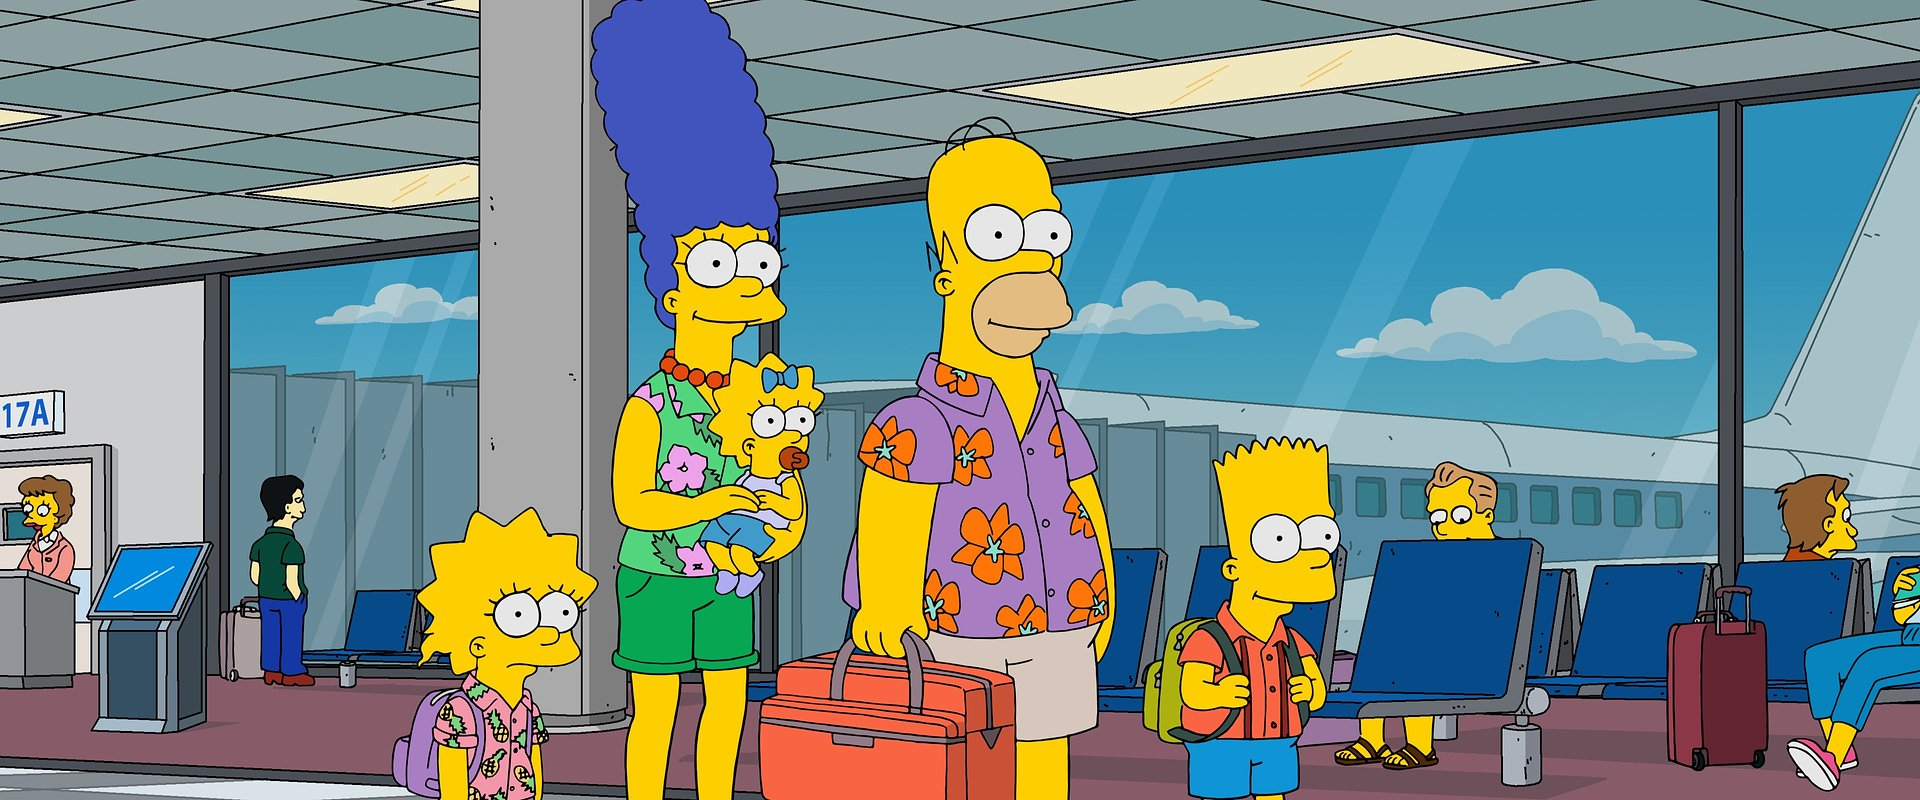 "DOMINGO DE PÁSCOA NO FOX COMEDY COM NOVOS EPISÓDIOS DE ""OS SIMPSONS"""